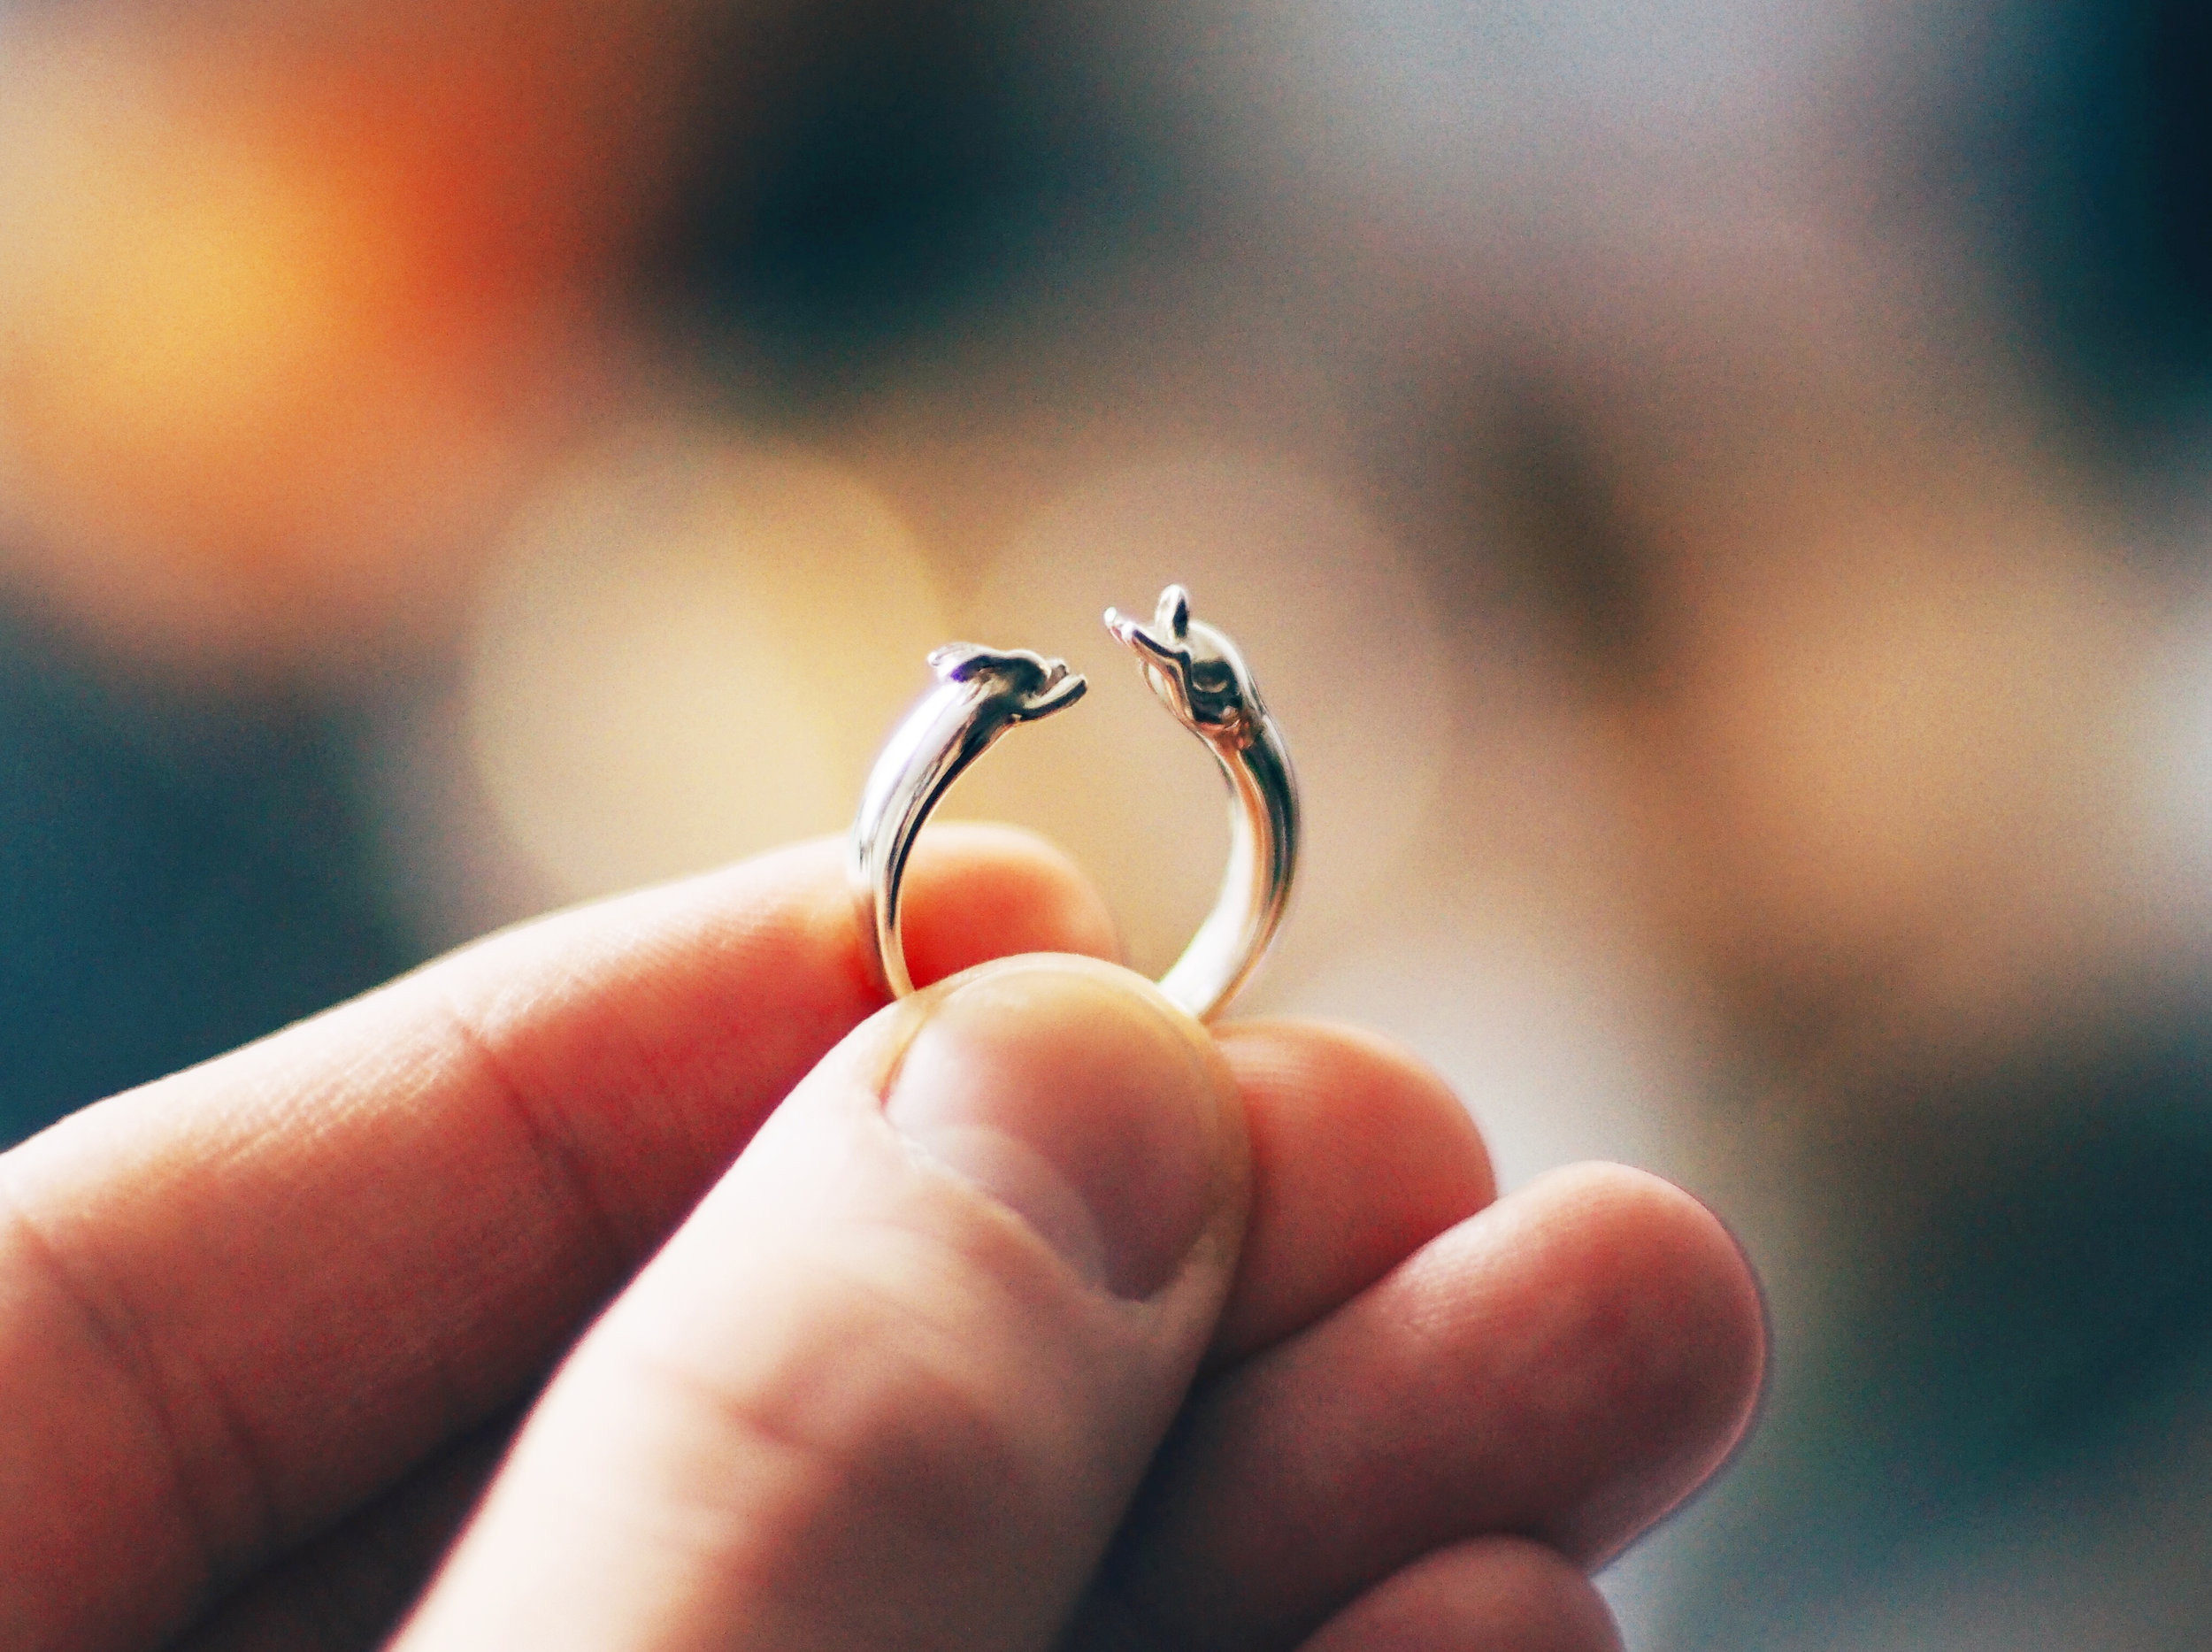 The ring is composed of two perfect circles — the interior and the rabbit's spine.